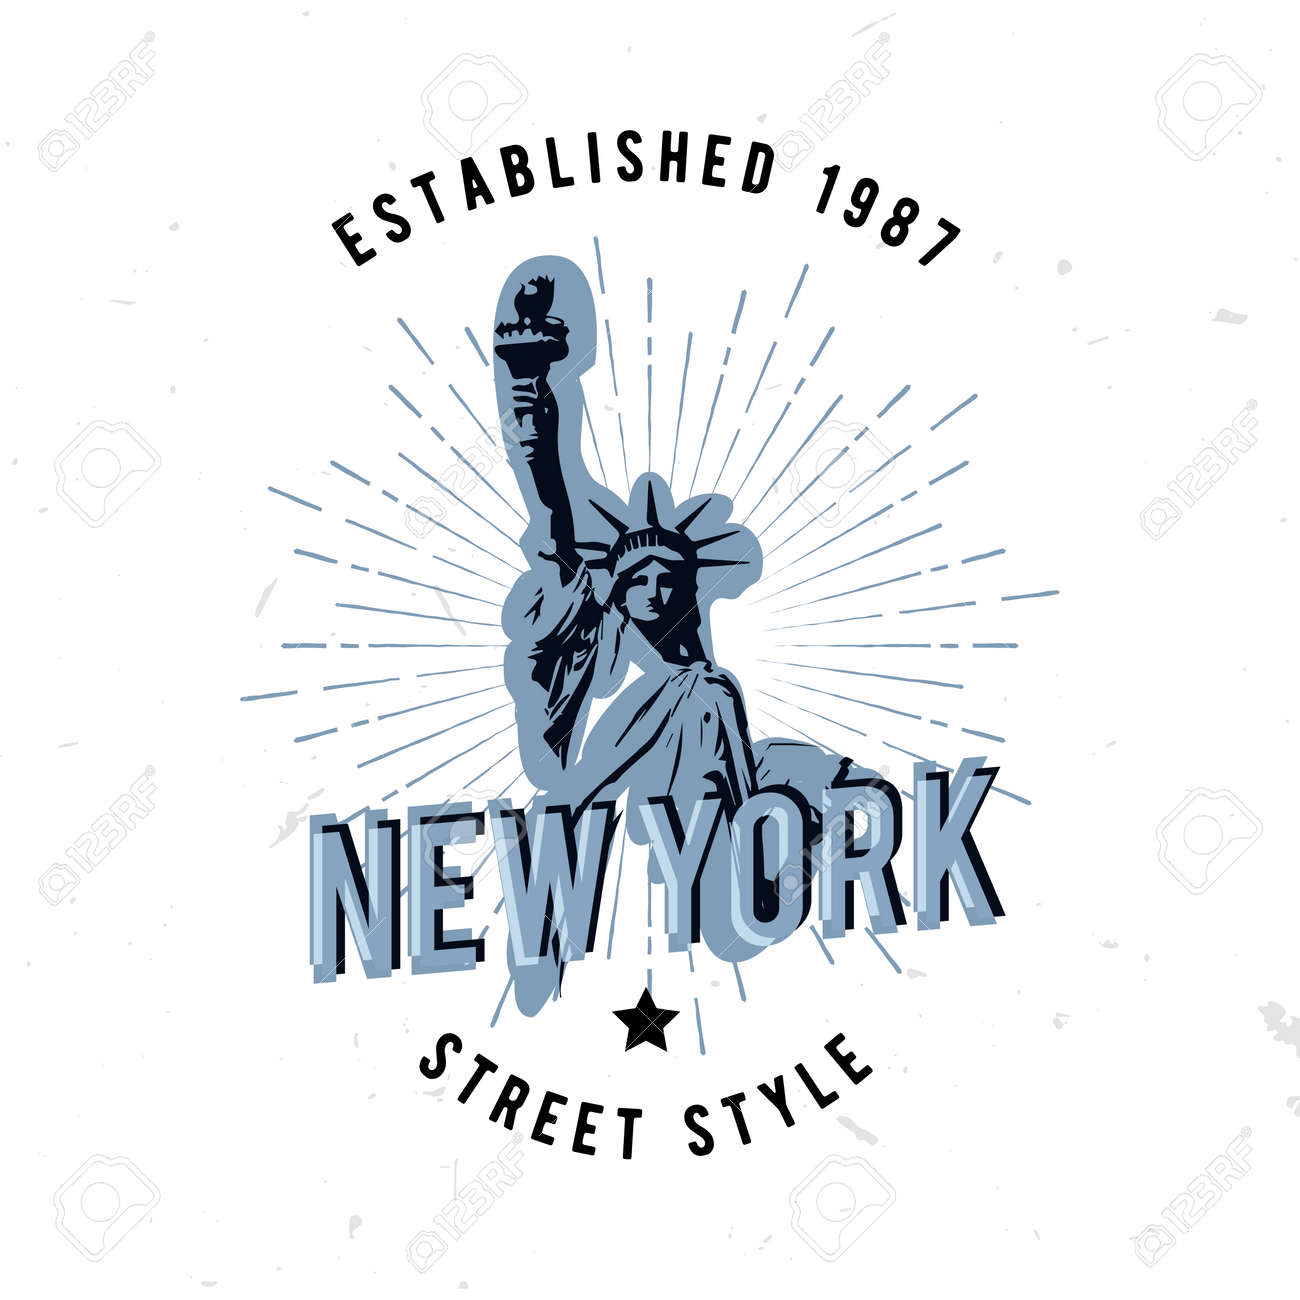 720eba12 New York street style apparel fashion design with sunburst and textured  distressed look. statue of